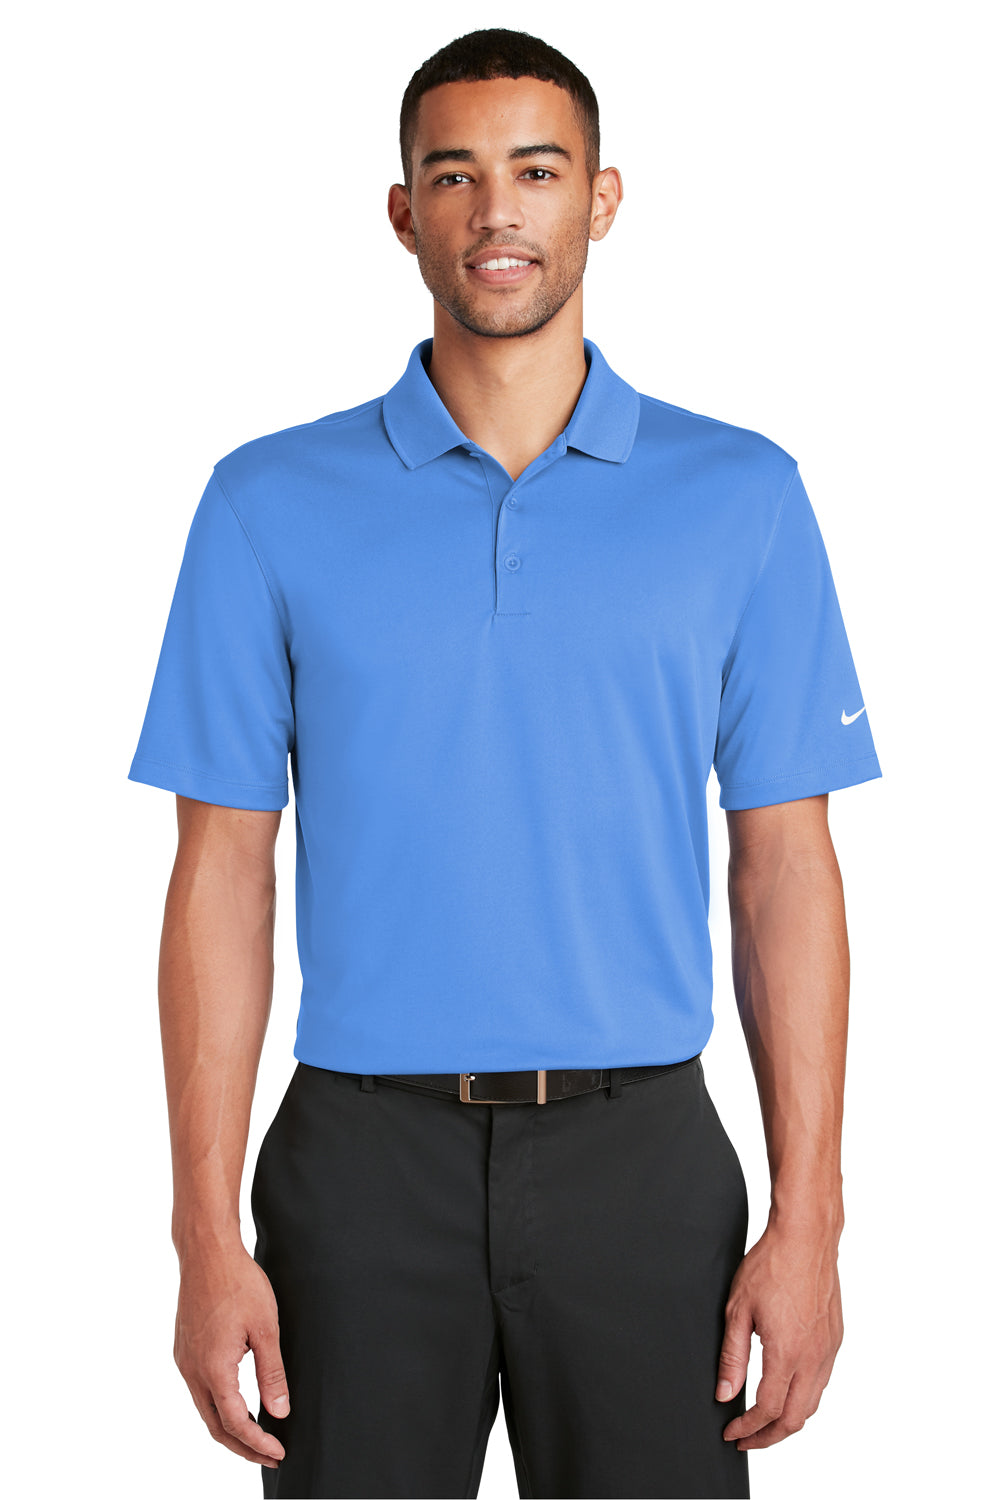 Nike 838956 Mens Players Dri-Fit Moisture Wicking Short Sleeve Polo Shirt Pacific Blue Front